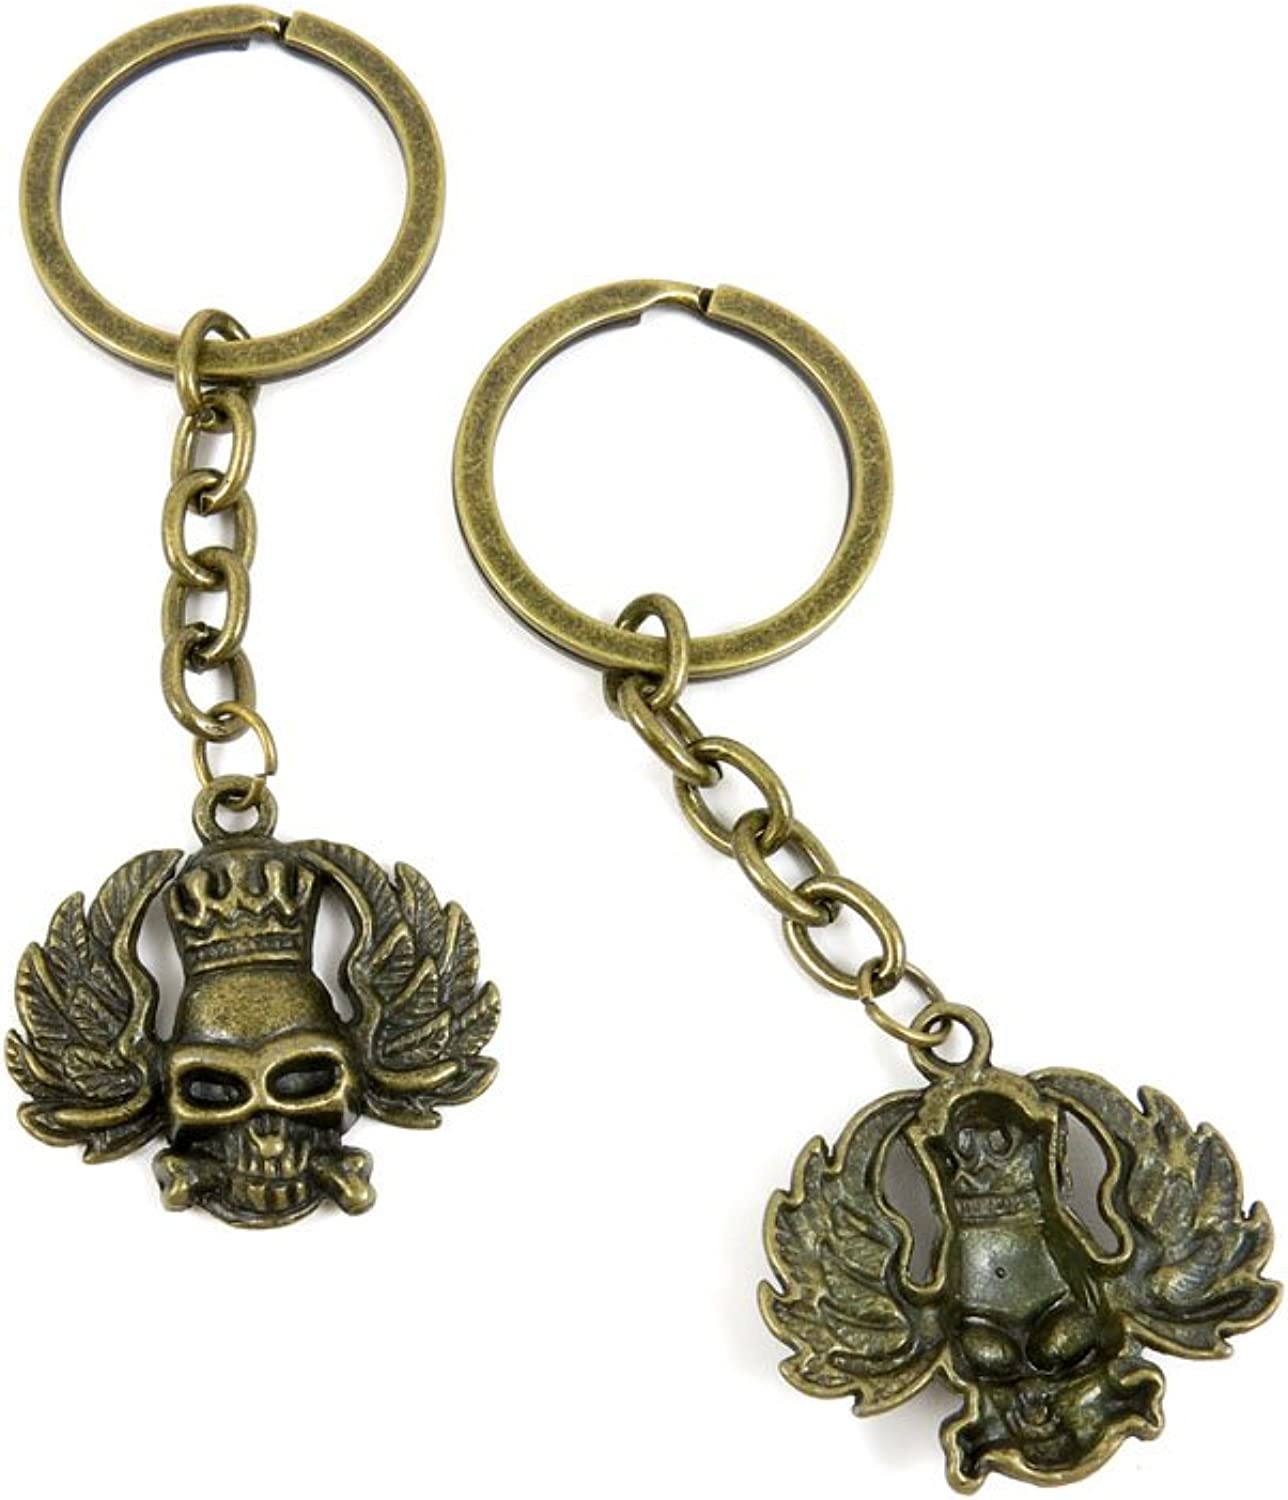 80 PCS Keyring Car Door Key Ring Tag Chain Keychain Wholesale Suppliers Charms Handmade H7AG3 King Skull